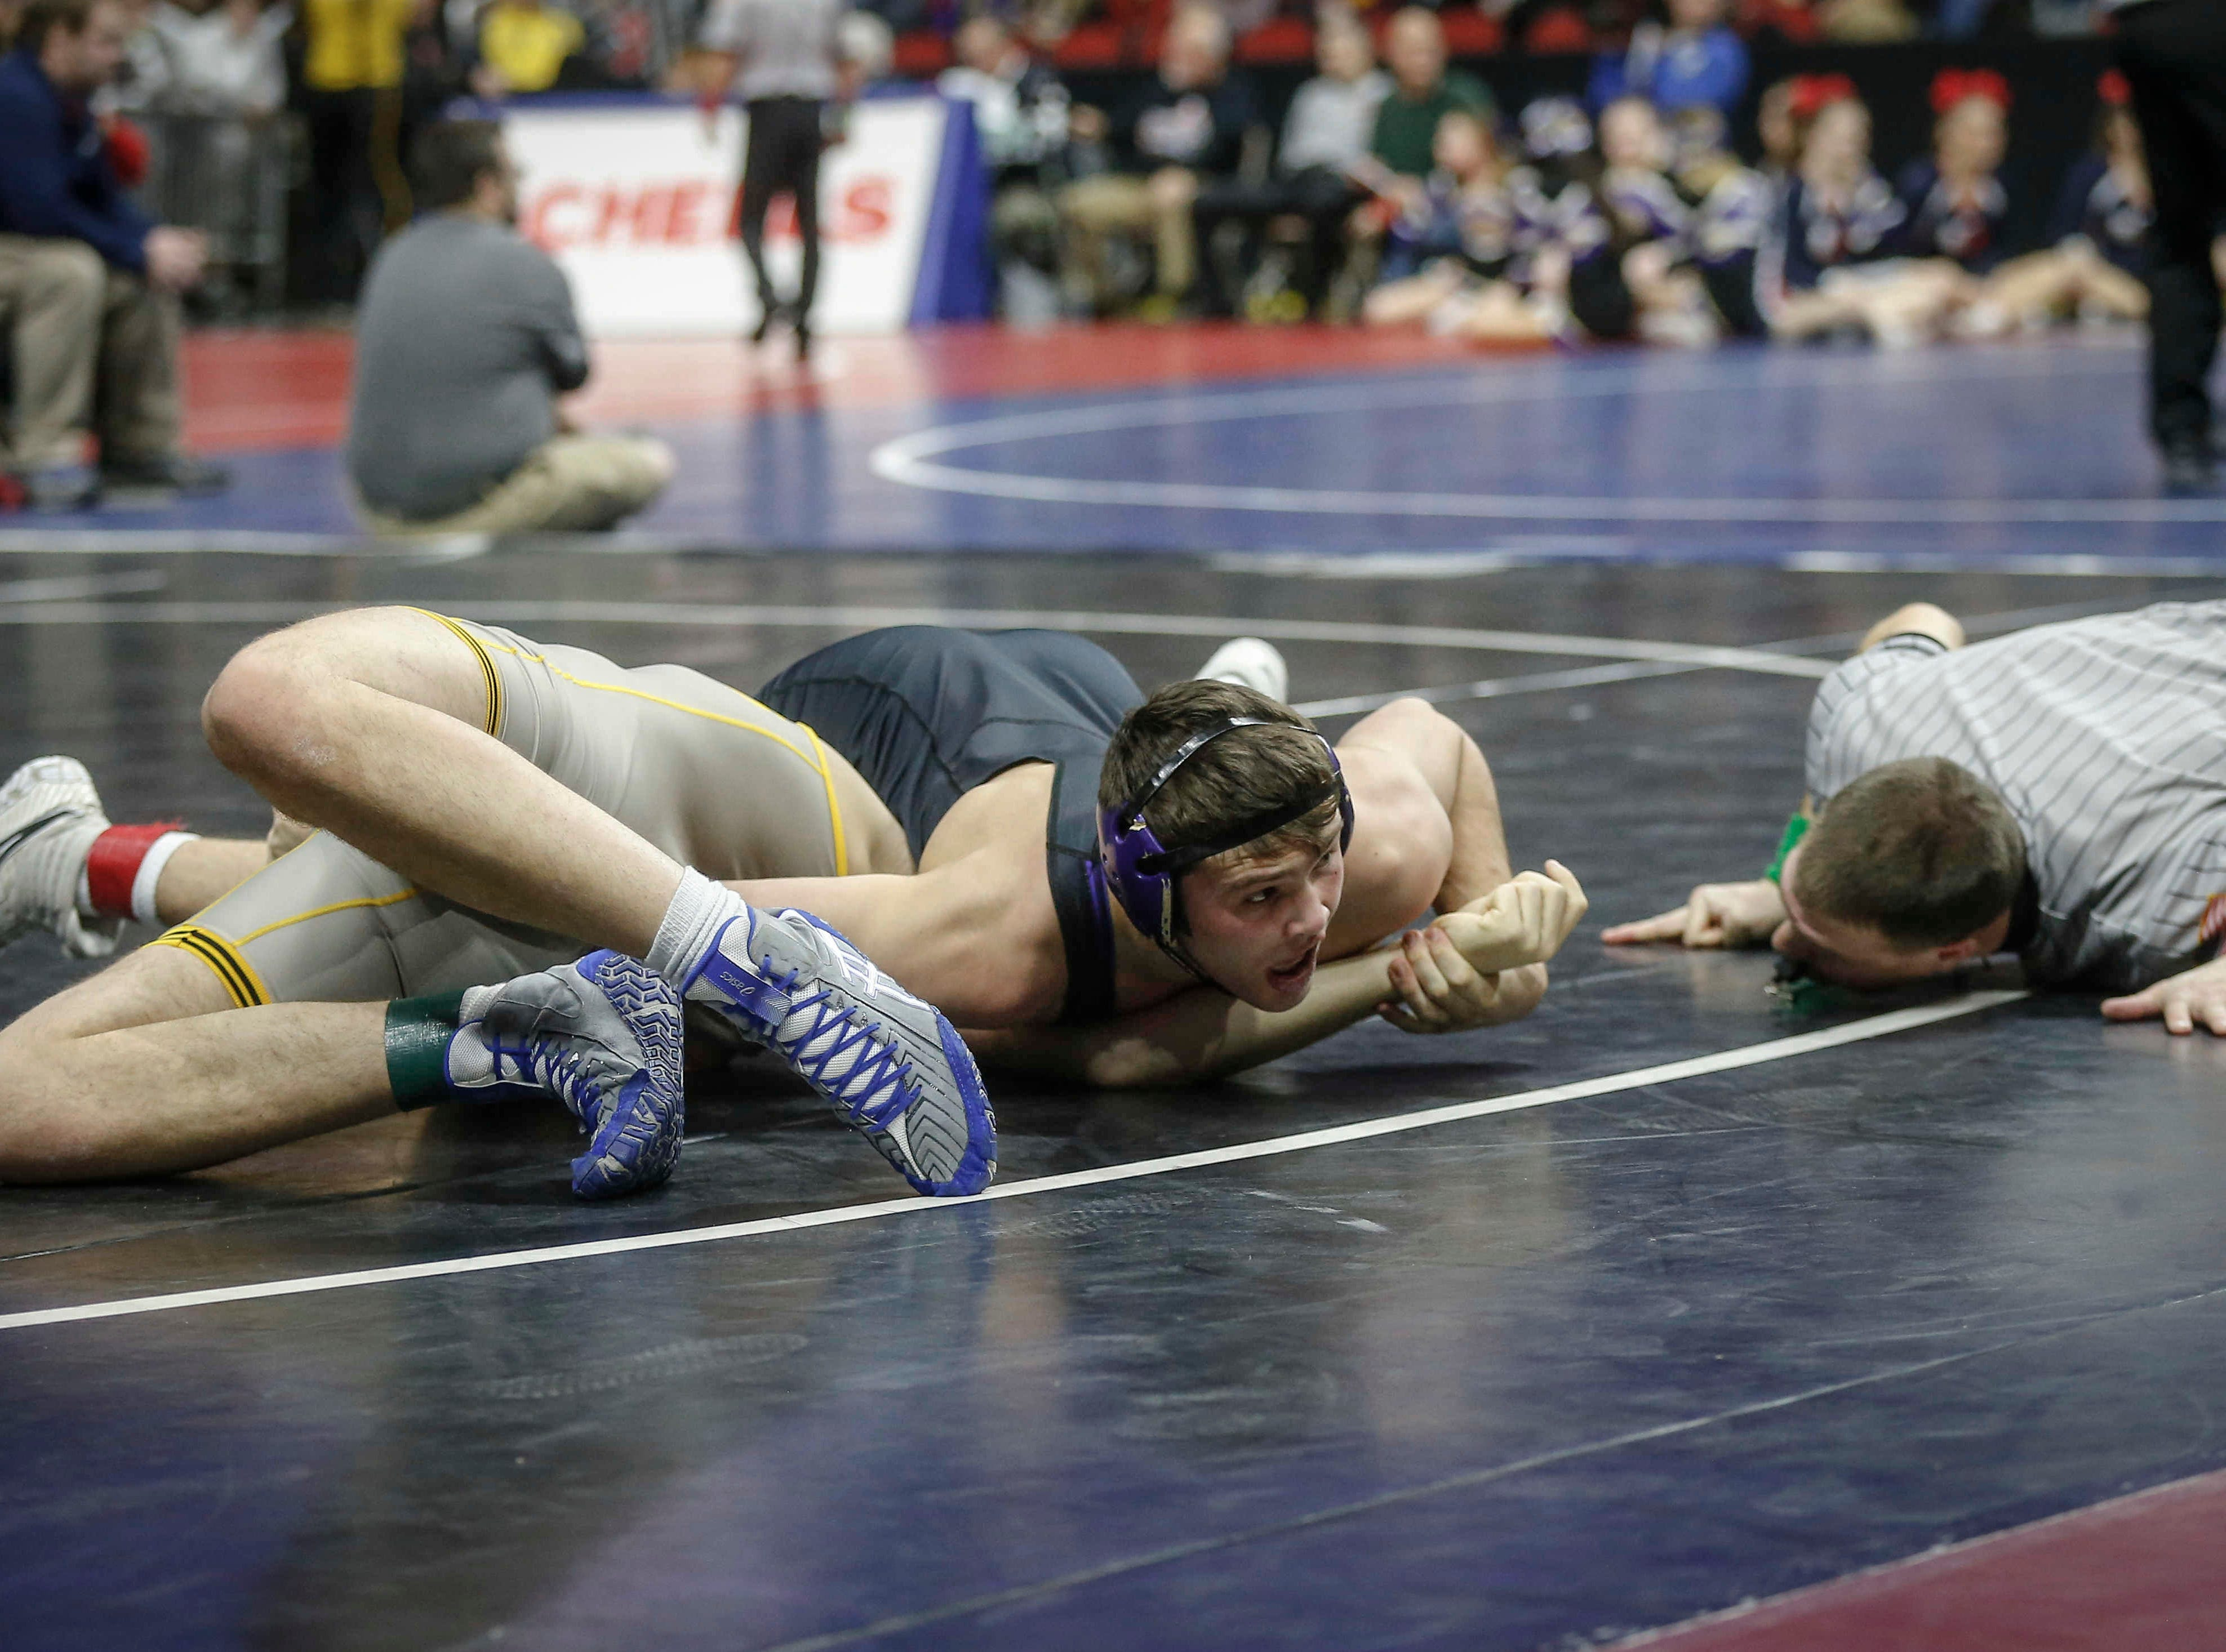 Waukee senior Anthony Zach pins Waverly-Shell Rock junior Gavin Wedemeier in their match at 170 pounds during the state wrestling quarterfinals on Friday, Feb. 15, 2019, at Wells Fargo Arena in Des Moines.